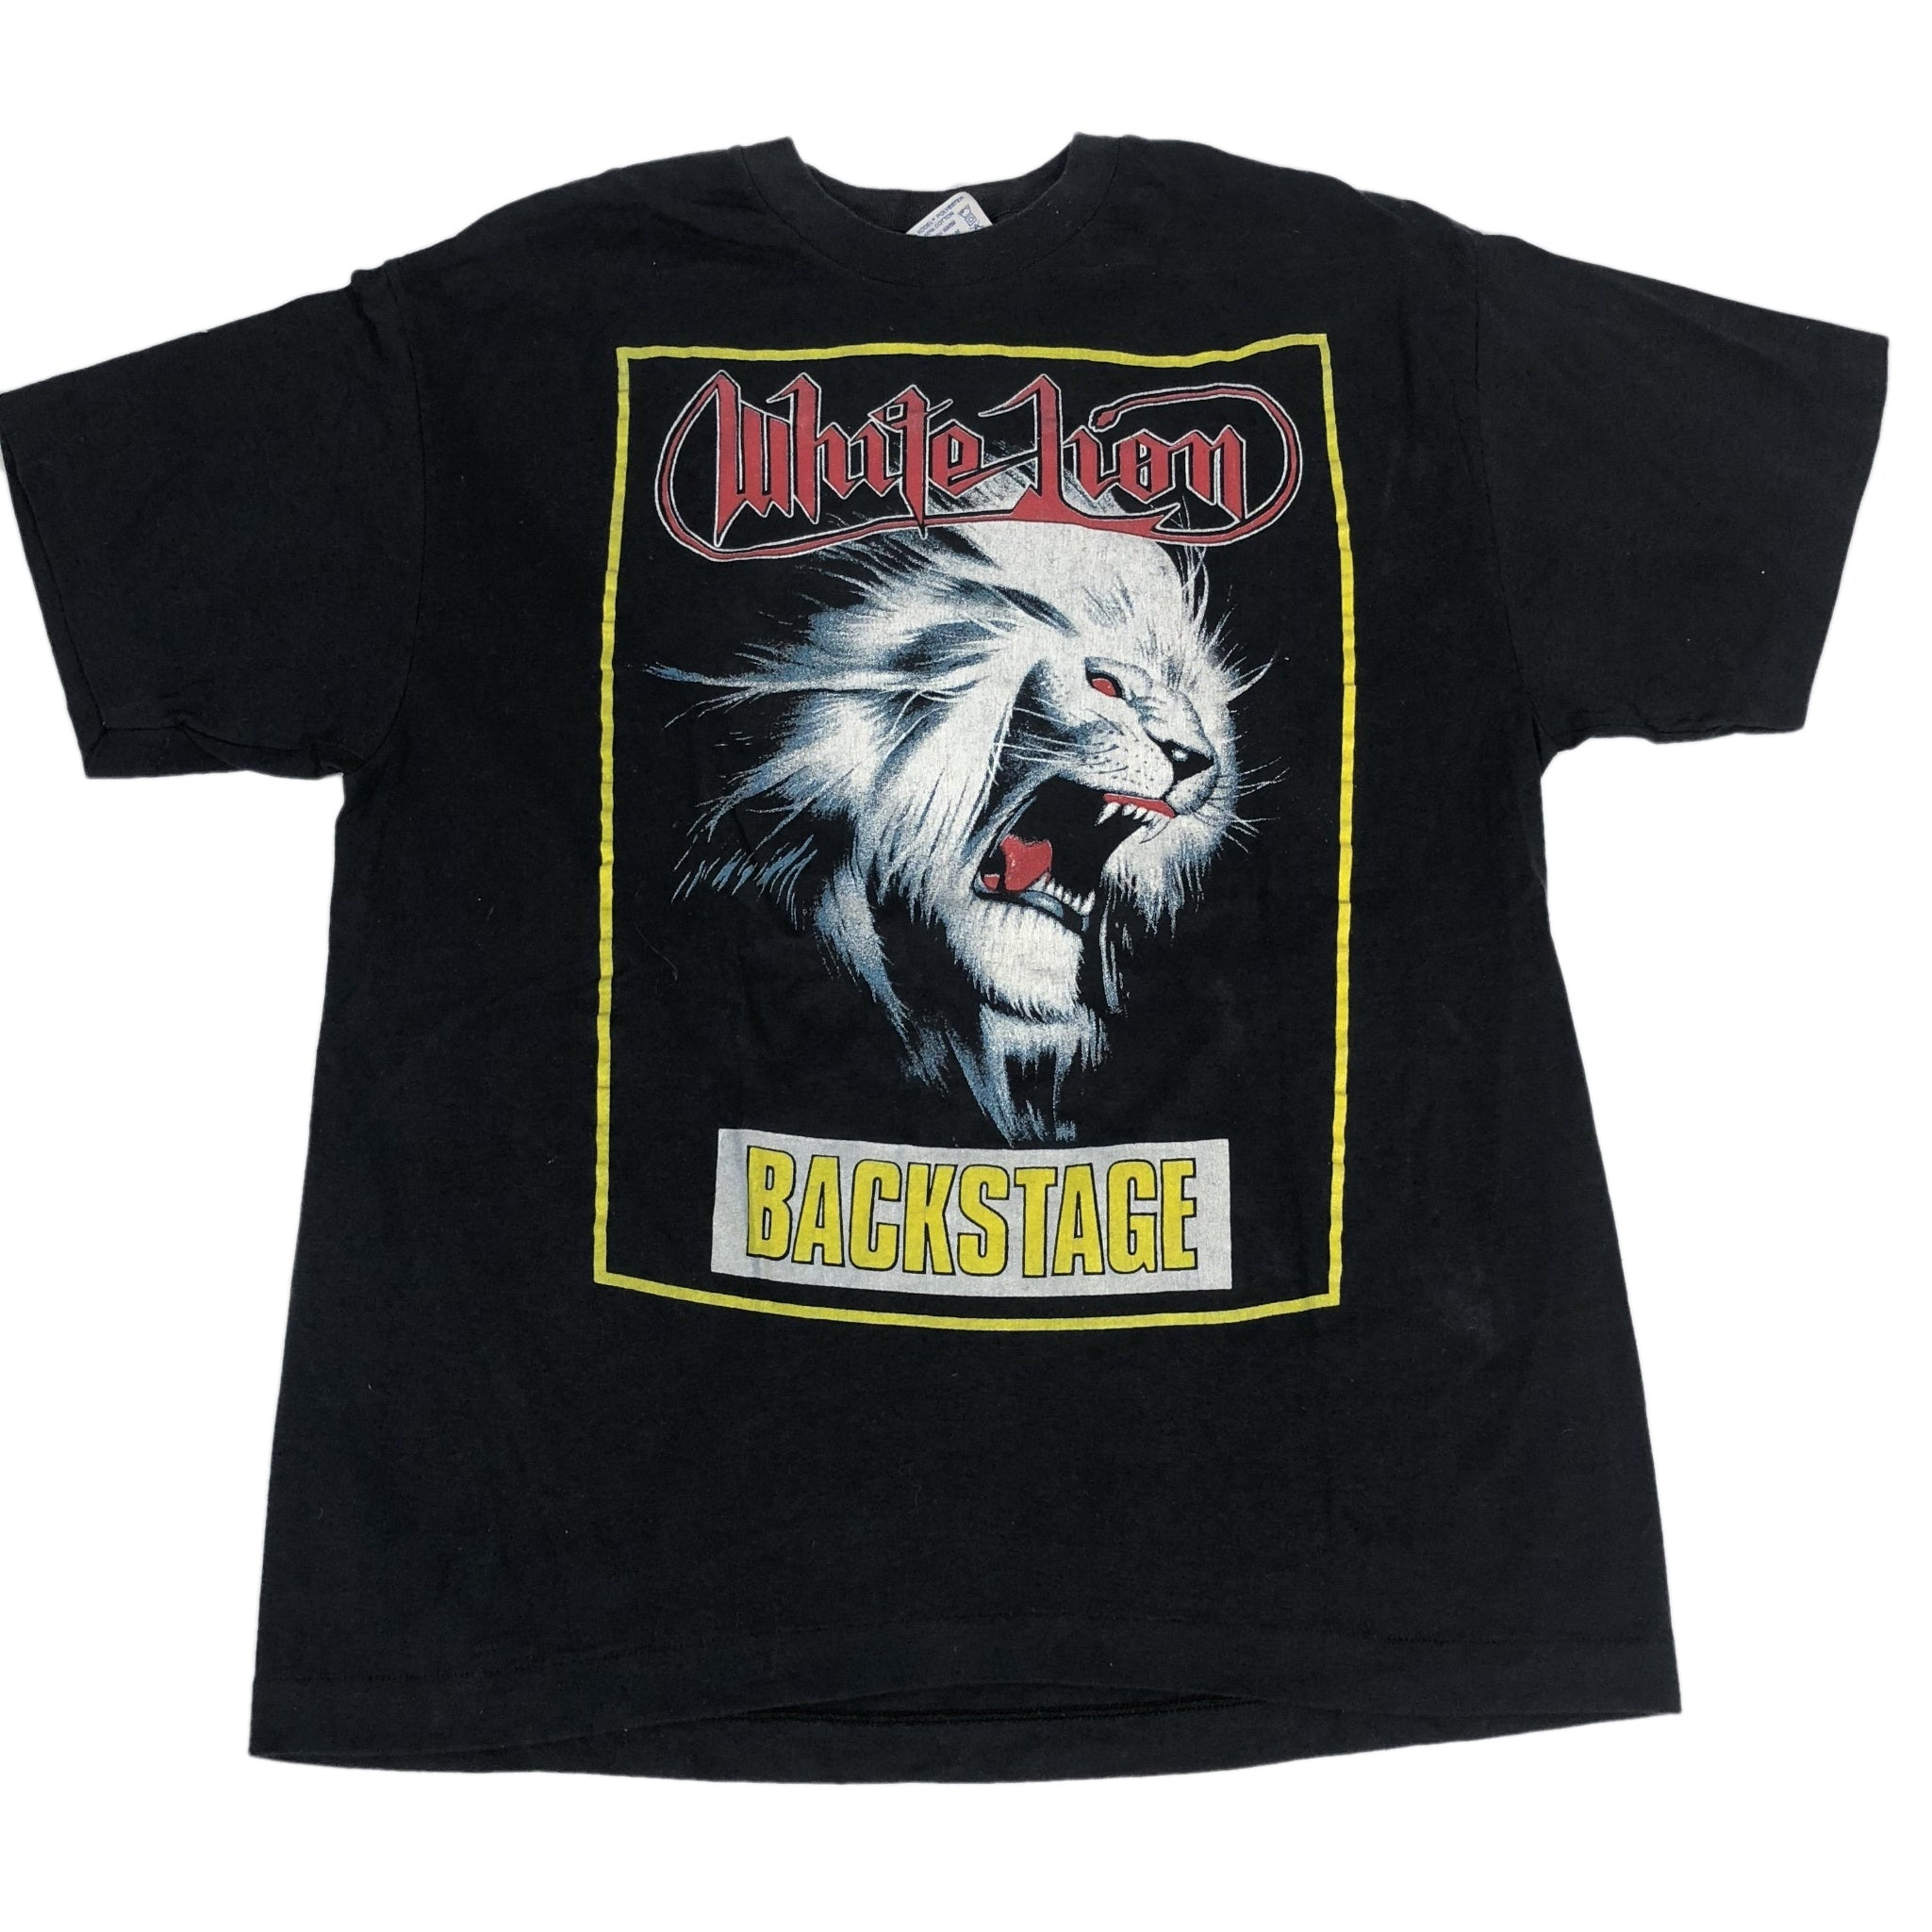 "Vintage White Lion ""Backstage"" T-Shirt"